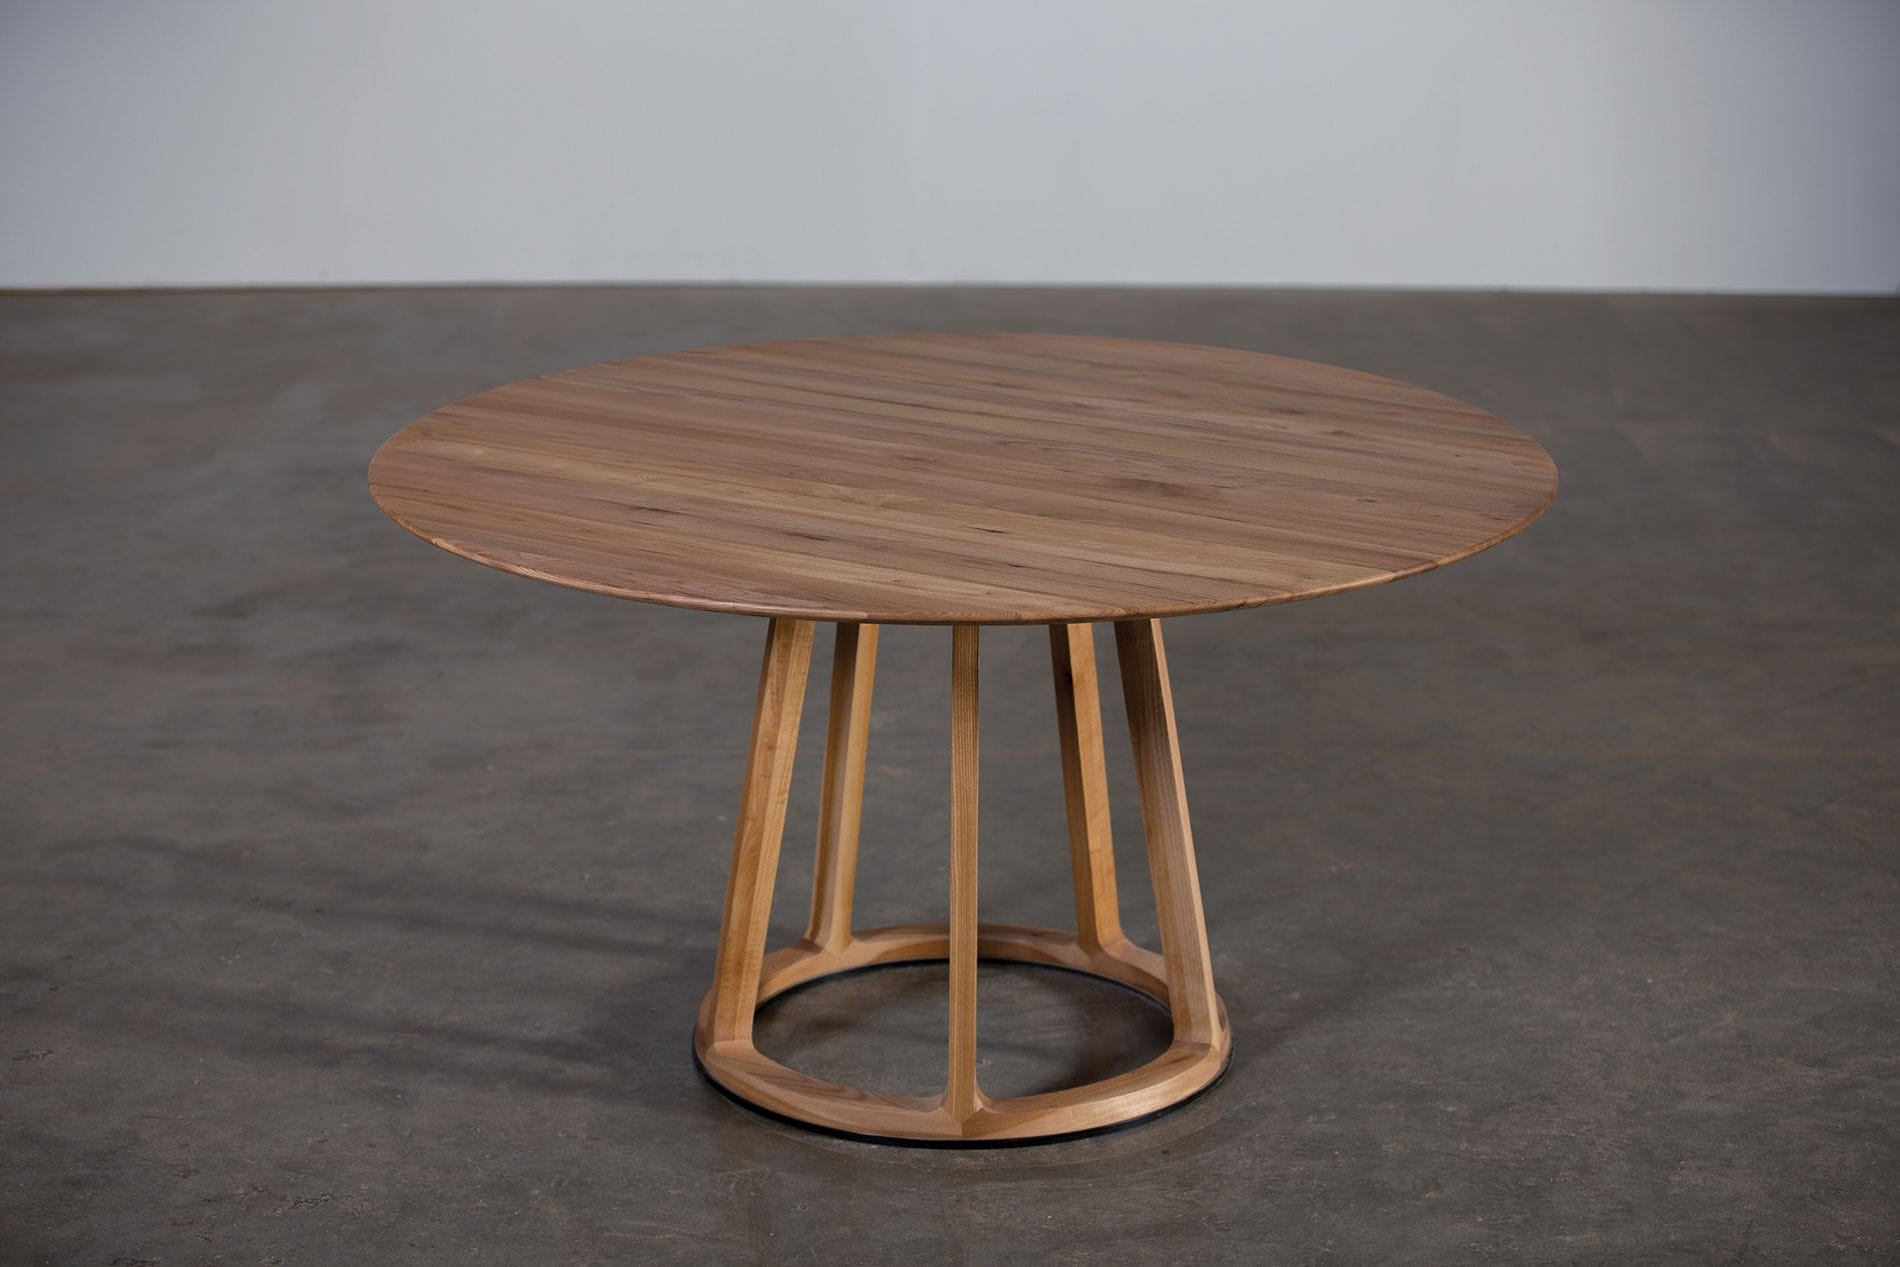 Contemporary table   oak   walnut   cherrywood PIVOT by Michael Schneider Artisan  Solid Wood Furniture. Contemporary table   oak   walnut   cherrywood   PIVOT by Michael